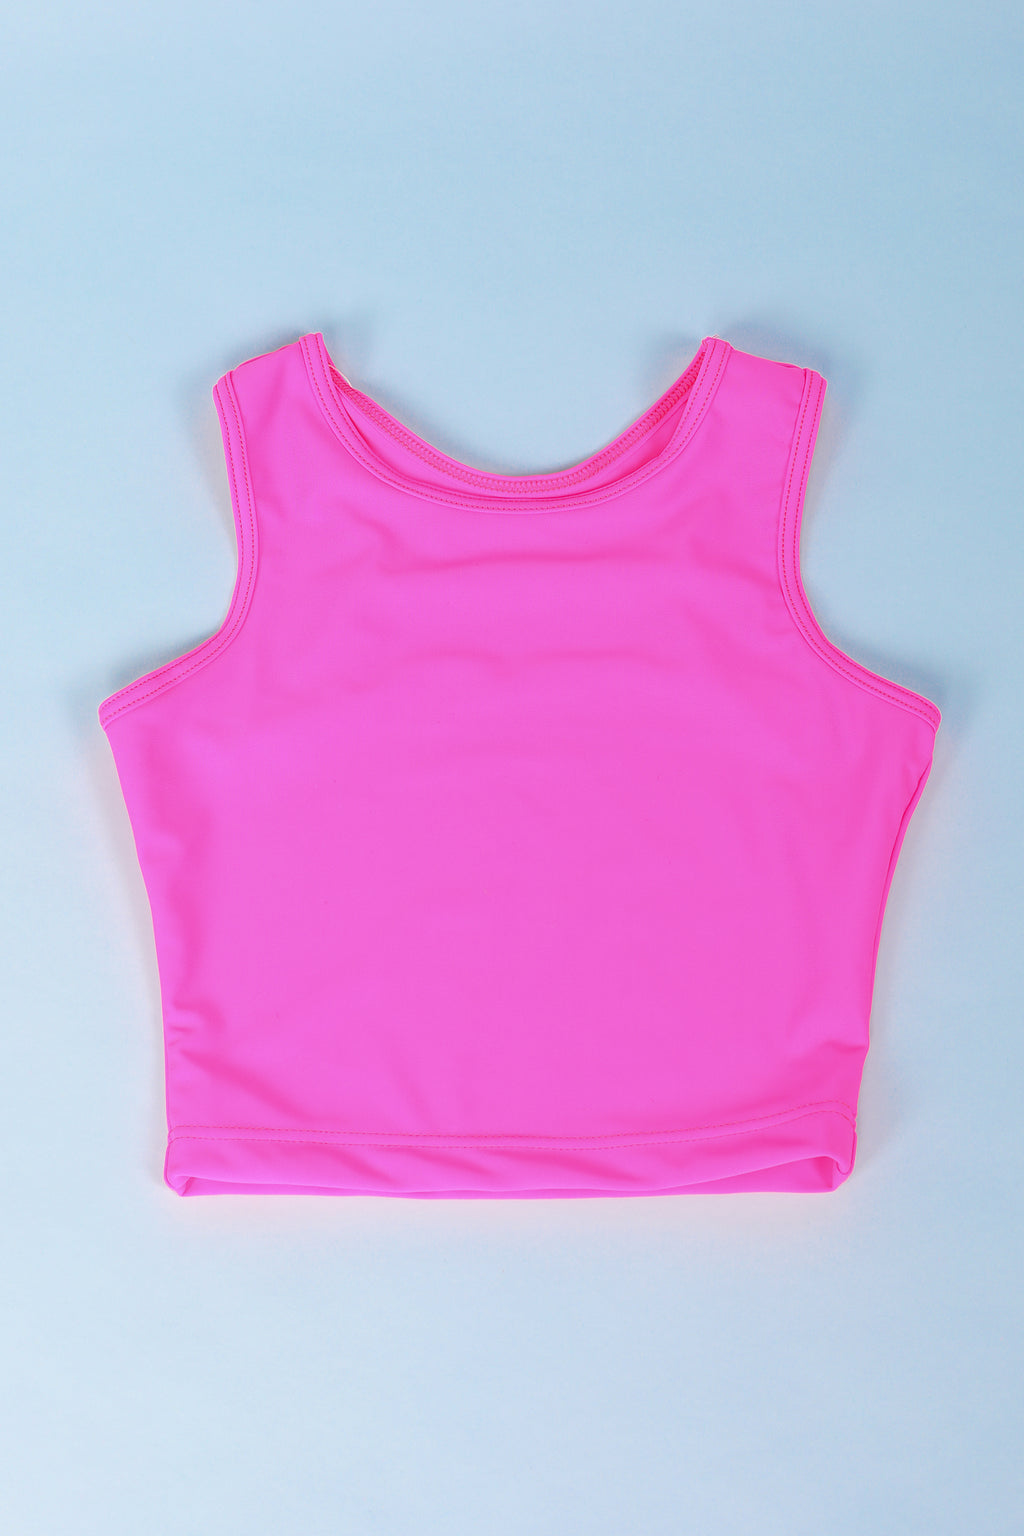 Hot Pink Lycra Crop Top